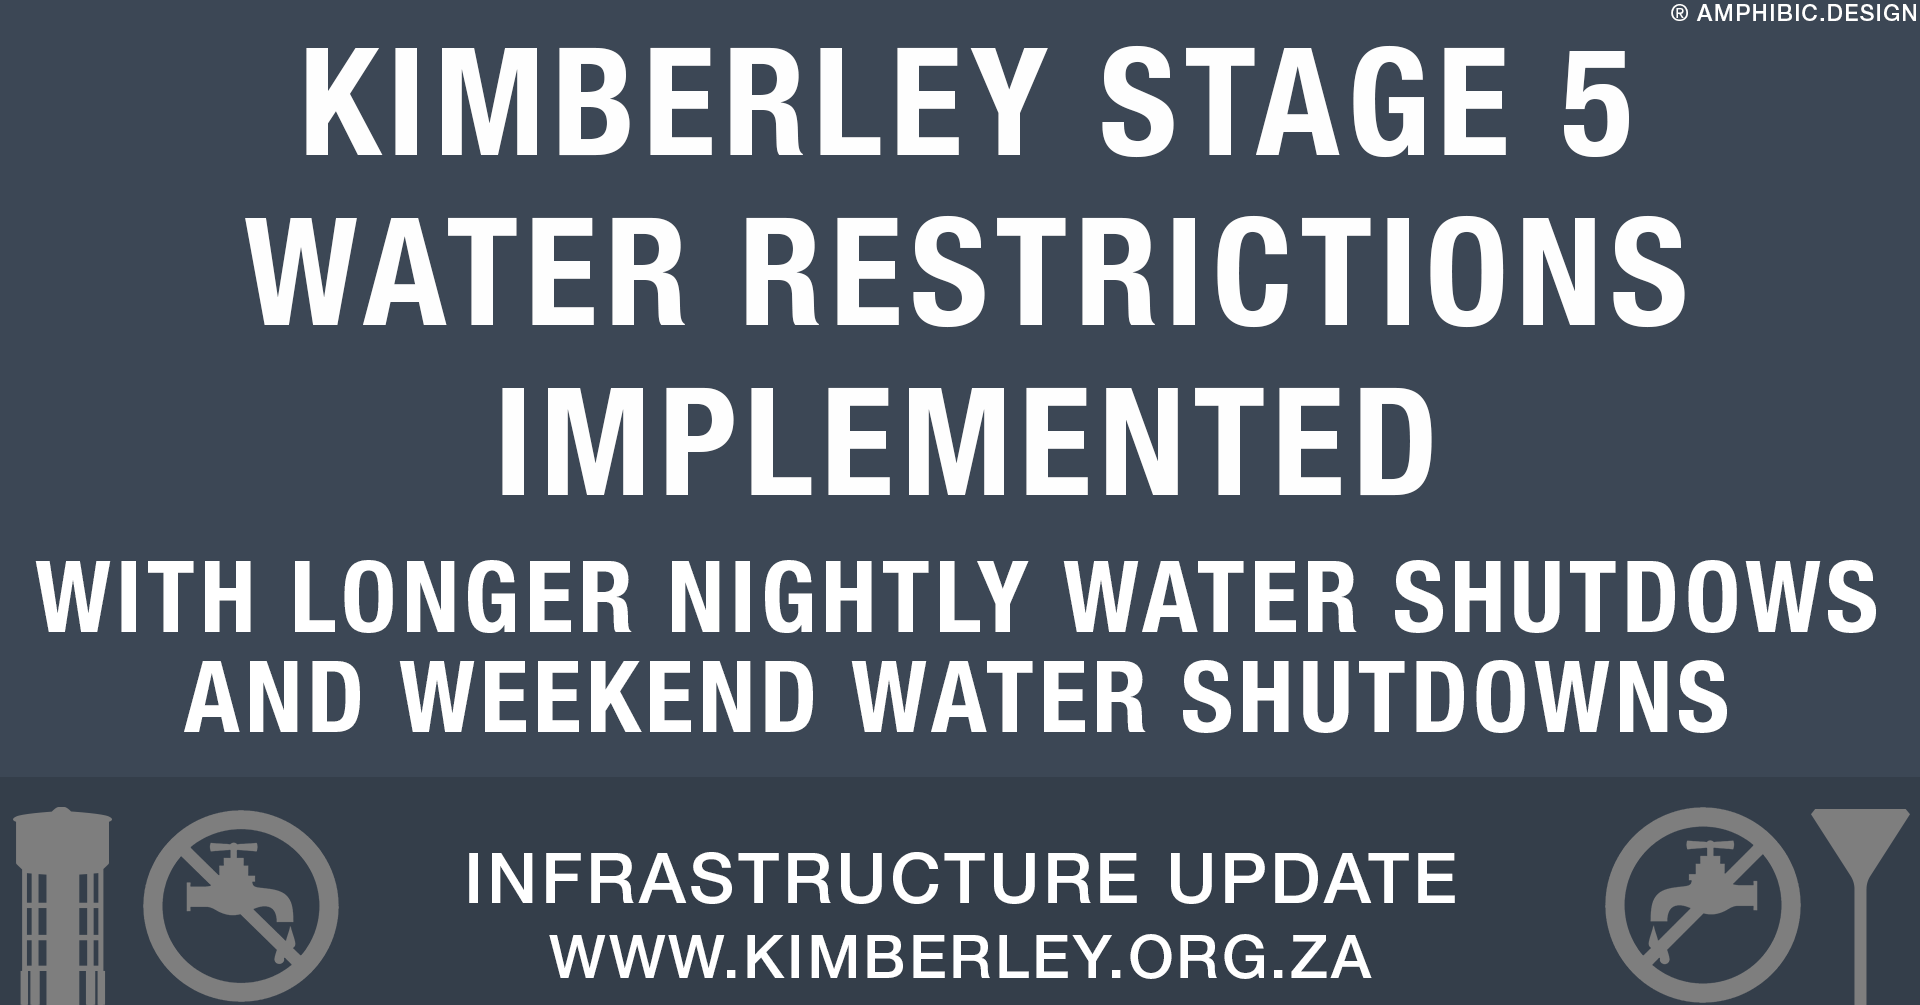 Stage 5 water restrictions implemented with longer nightly water shutdowns Kimberley Sol Plaatje